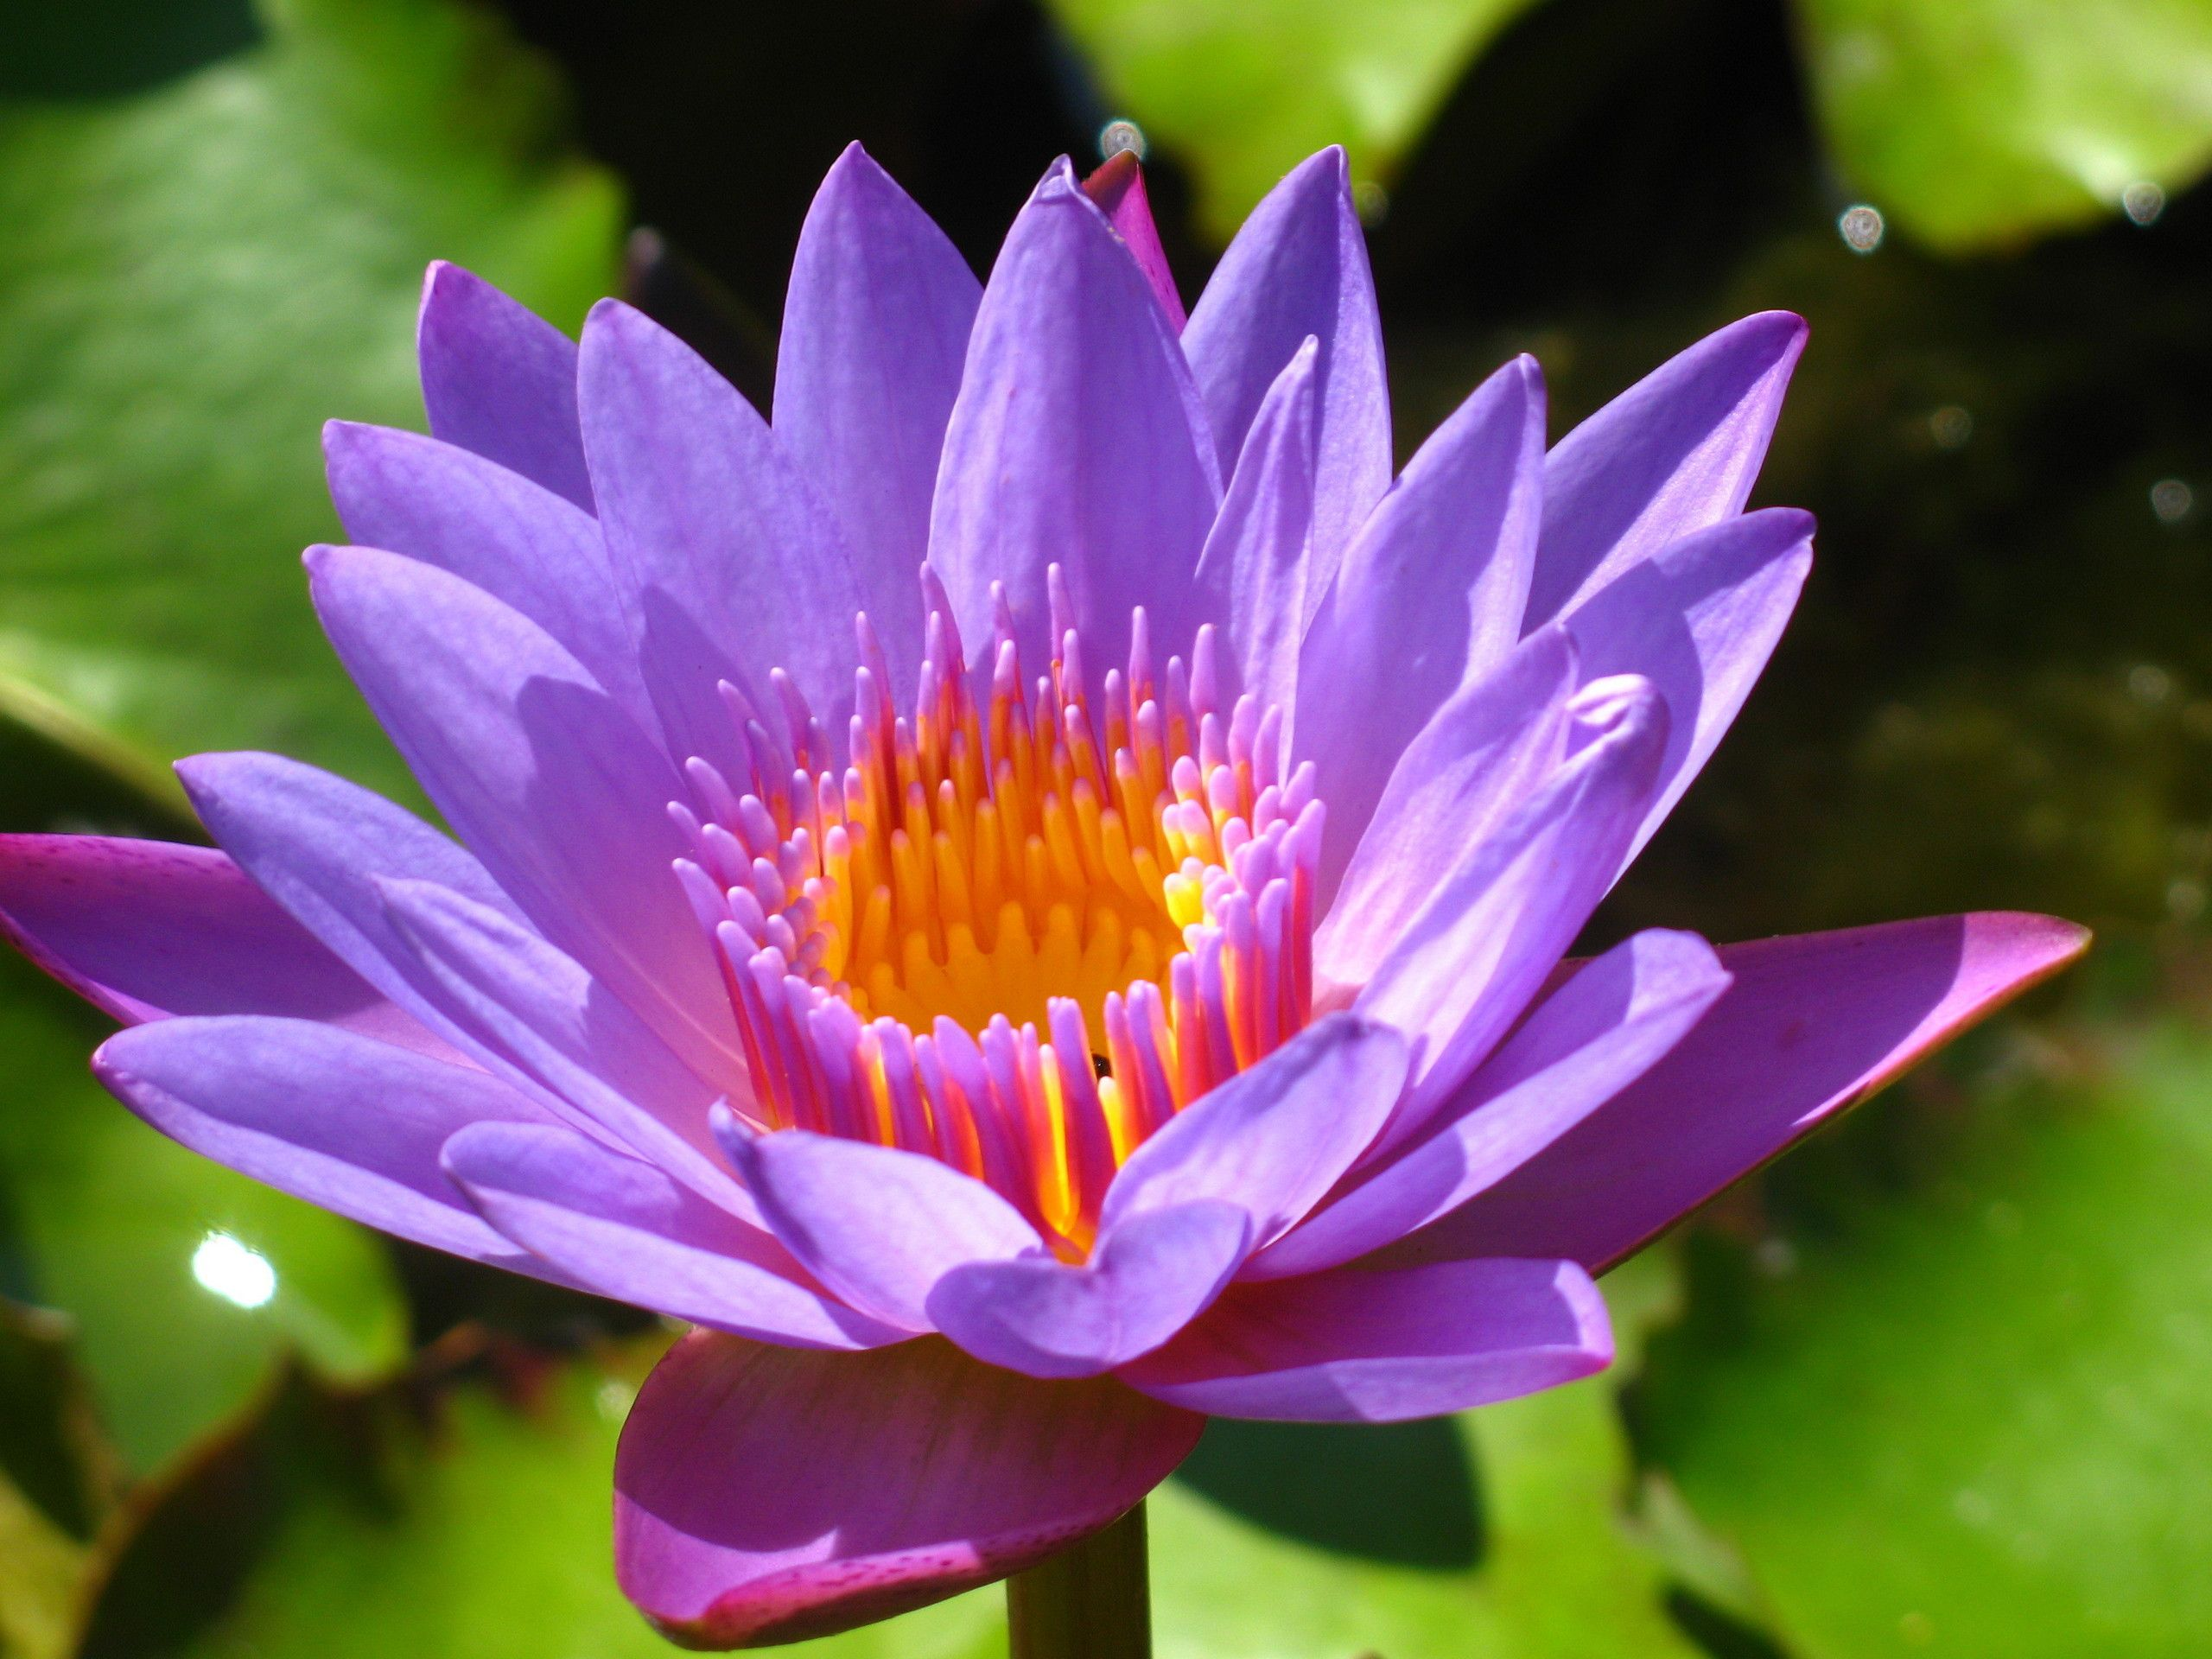 Flowers Photo Water Lily Or Lotus Lotus Flower Wallpaper Lotus Flower Pictures Water Lily Coolest lily flower wallpaper images